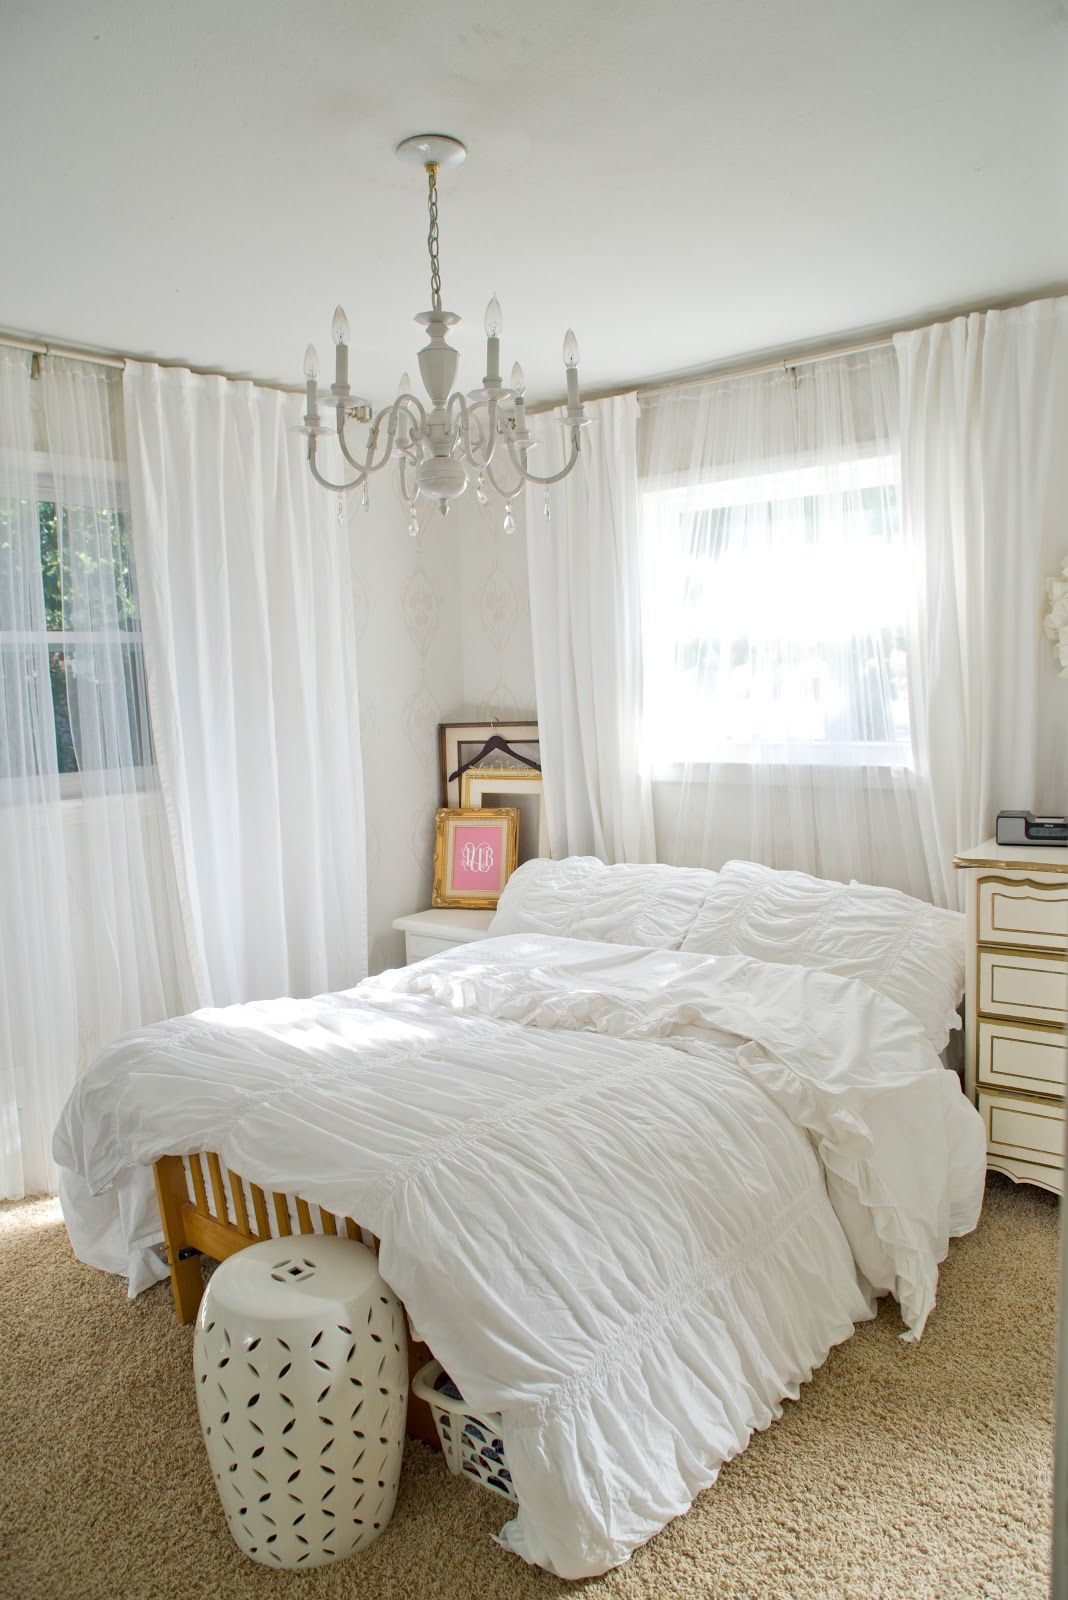 All White Bedroom With Chandelier And Curtains; Romantic; Faint  Stencil/pattern On Wall